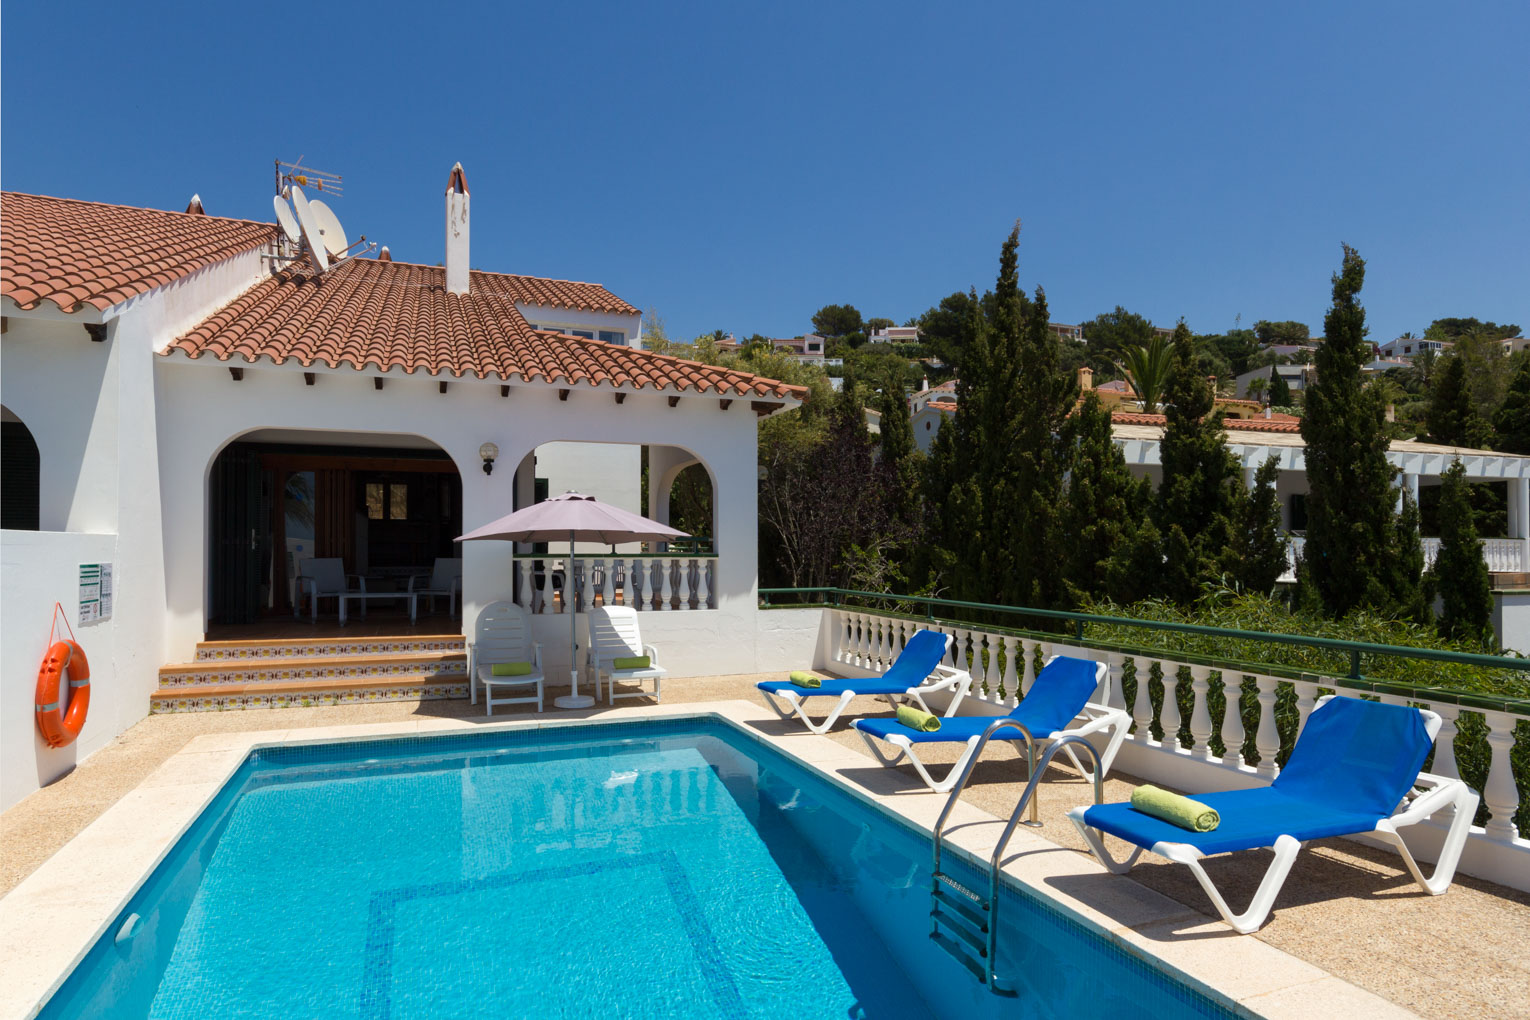 Villa Carolina in Son Bou, Menorca